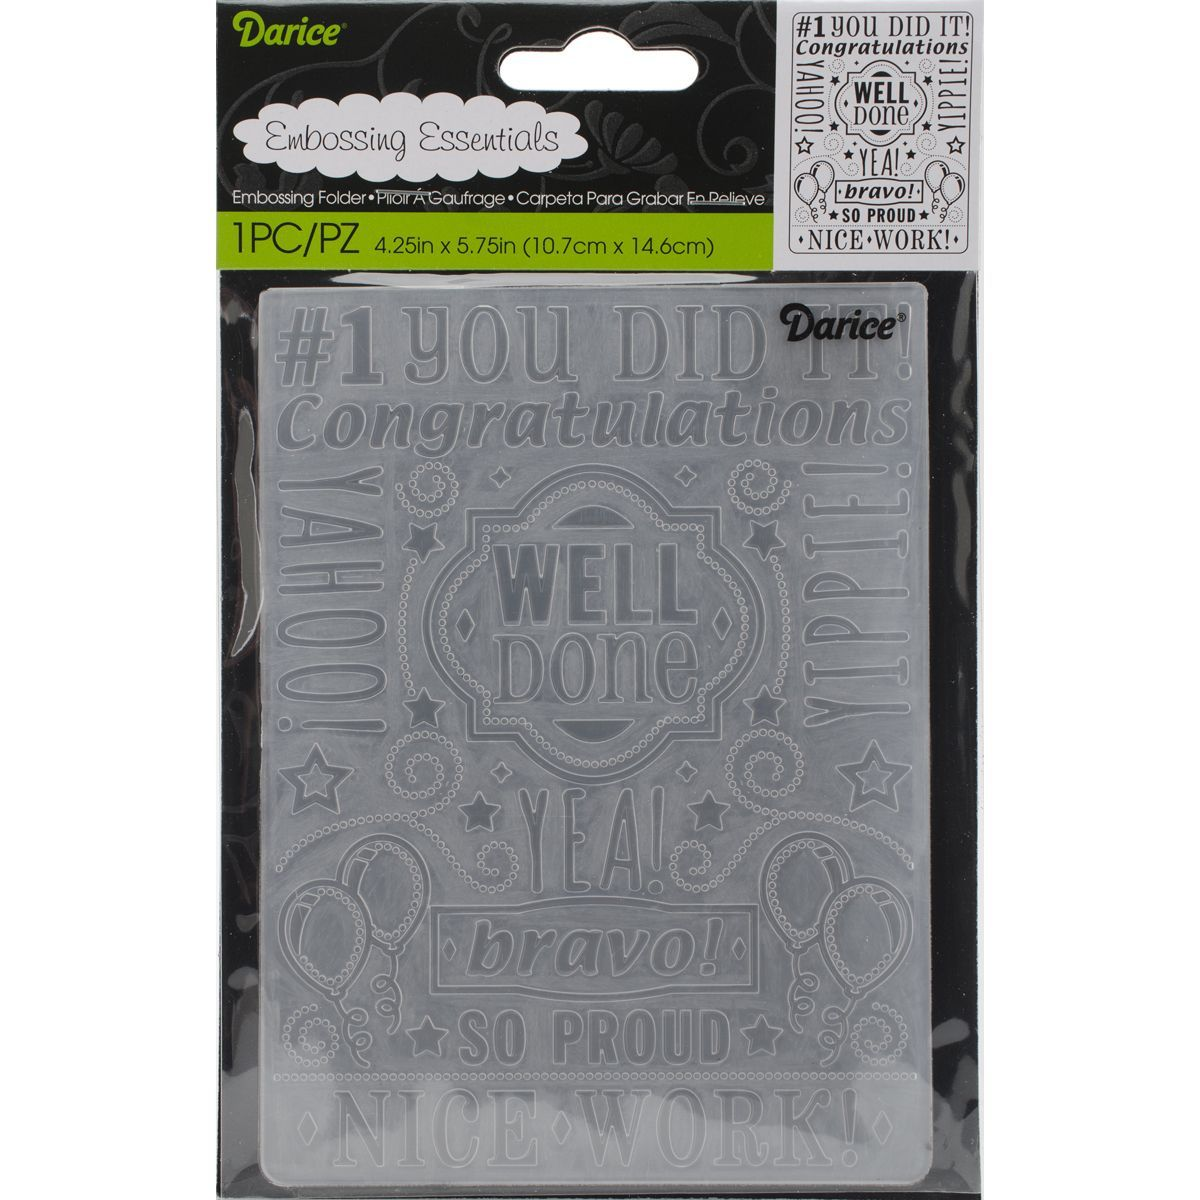 Darice Embossing Folder 4.25inX5.75inCongrats Collage